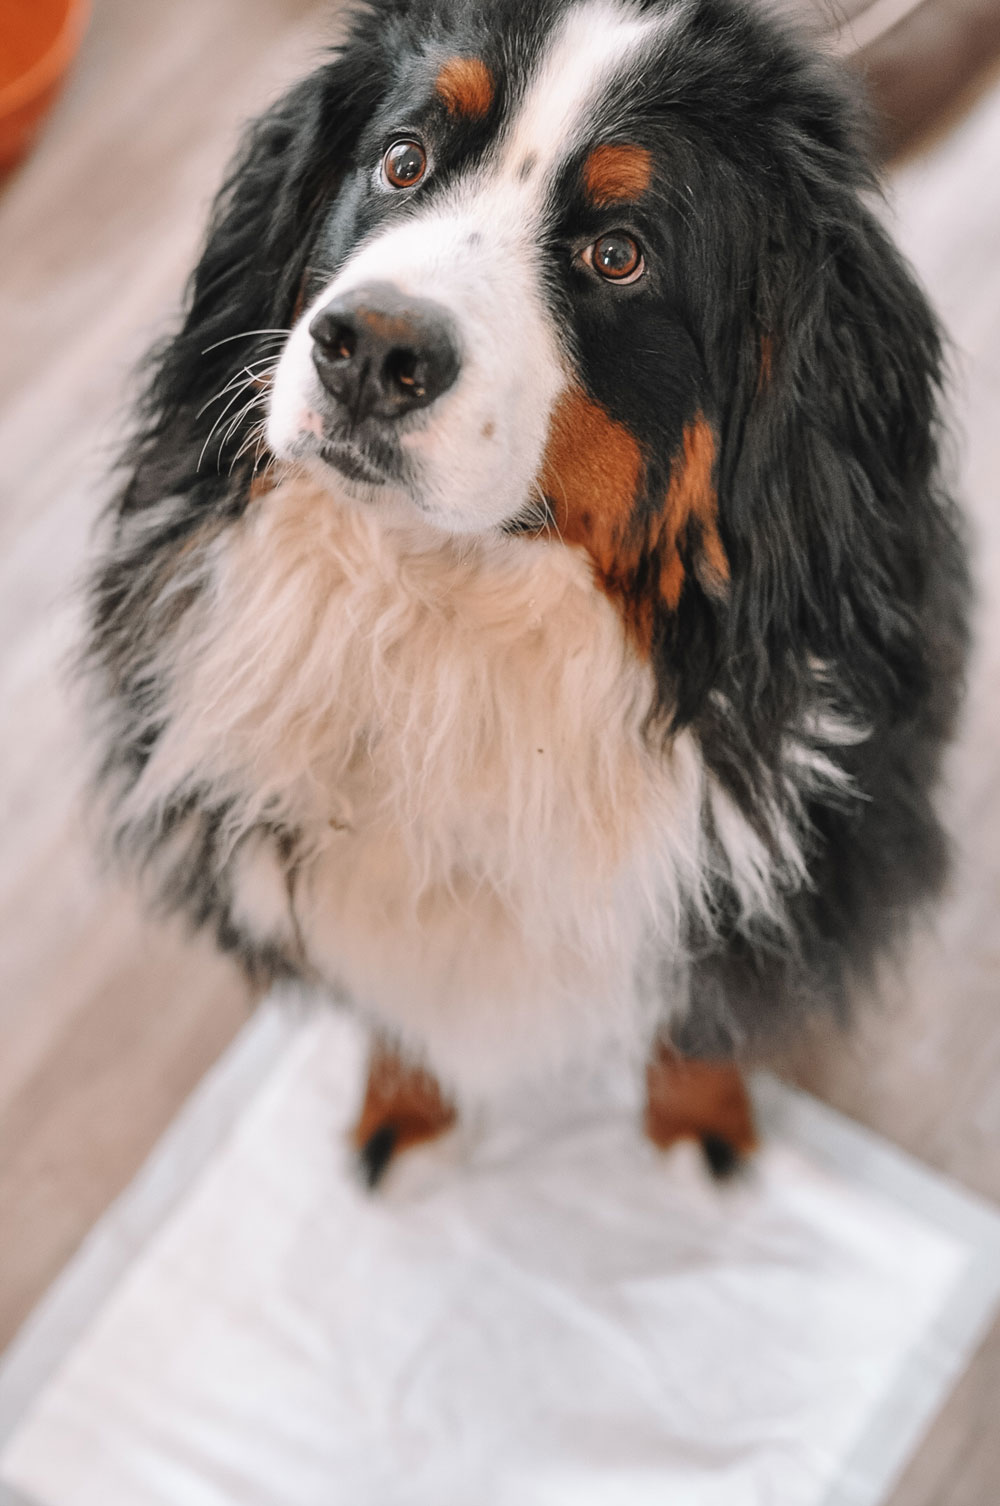 Kylo the Bernese Mountain Dog loves his Hartz Dog Pads